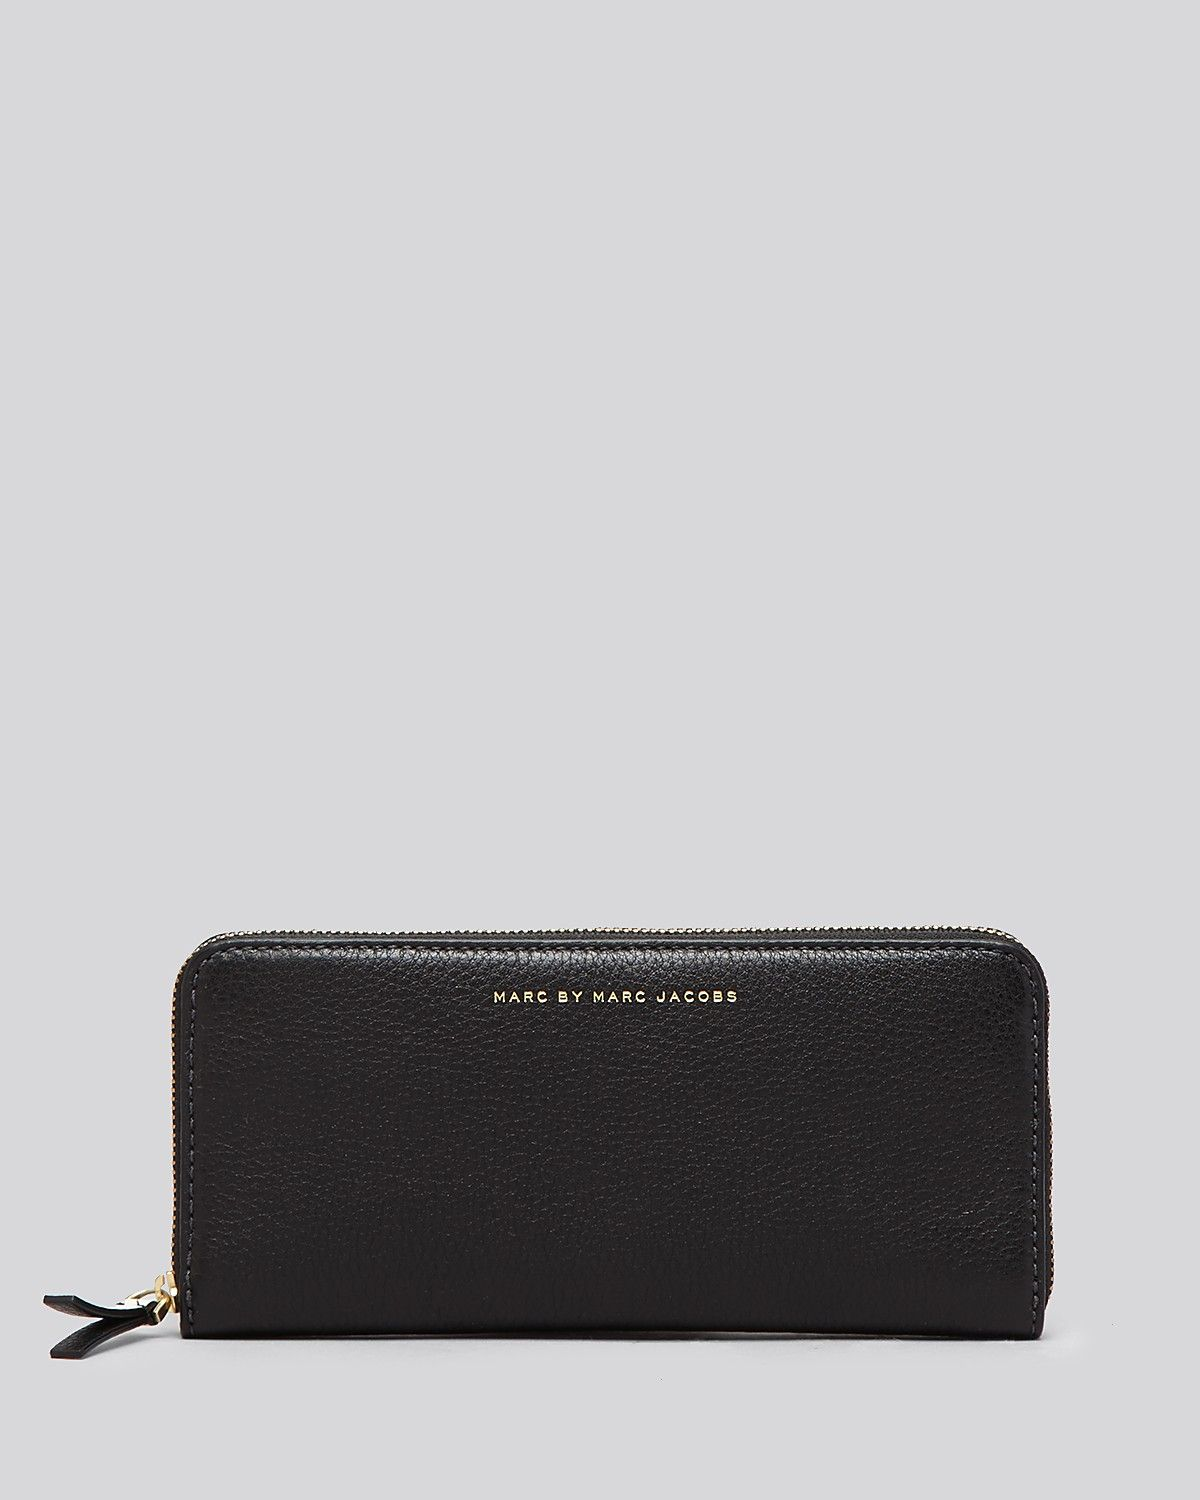 094d15e2756e MARC BY MARC JACOBS Wallet - Sophisticato Slim Zip Around Continental